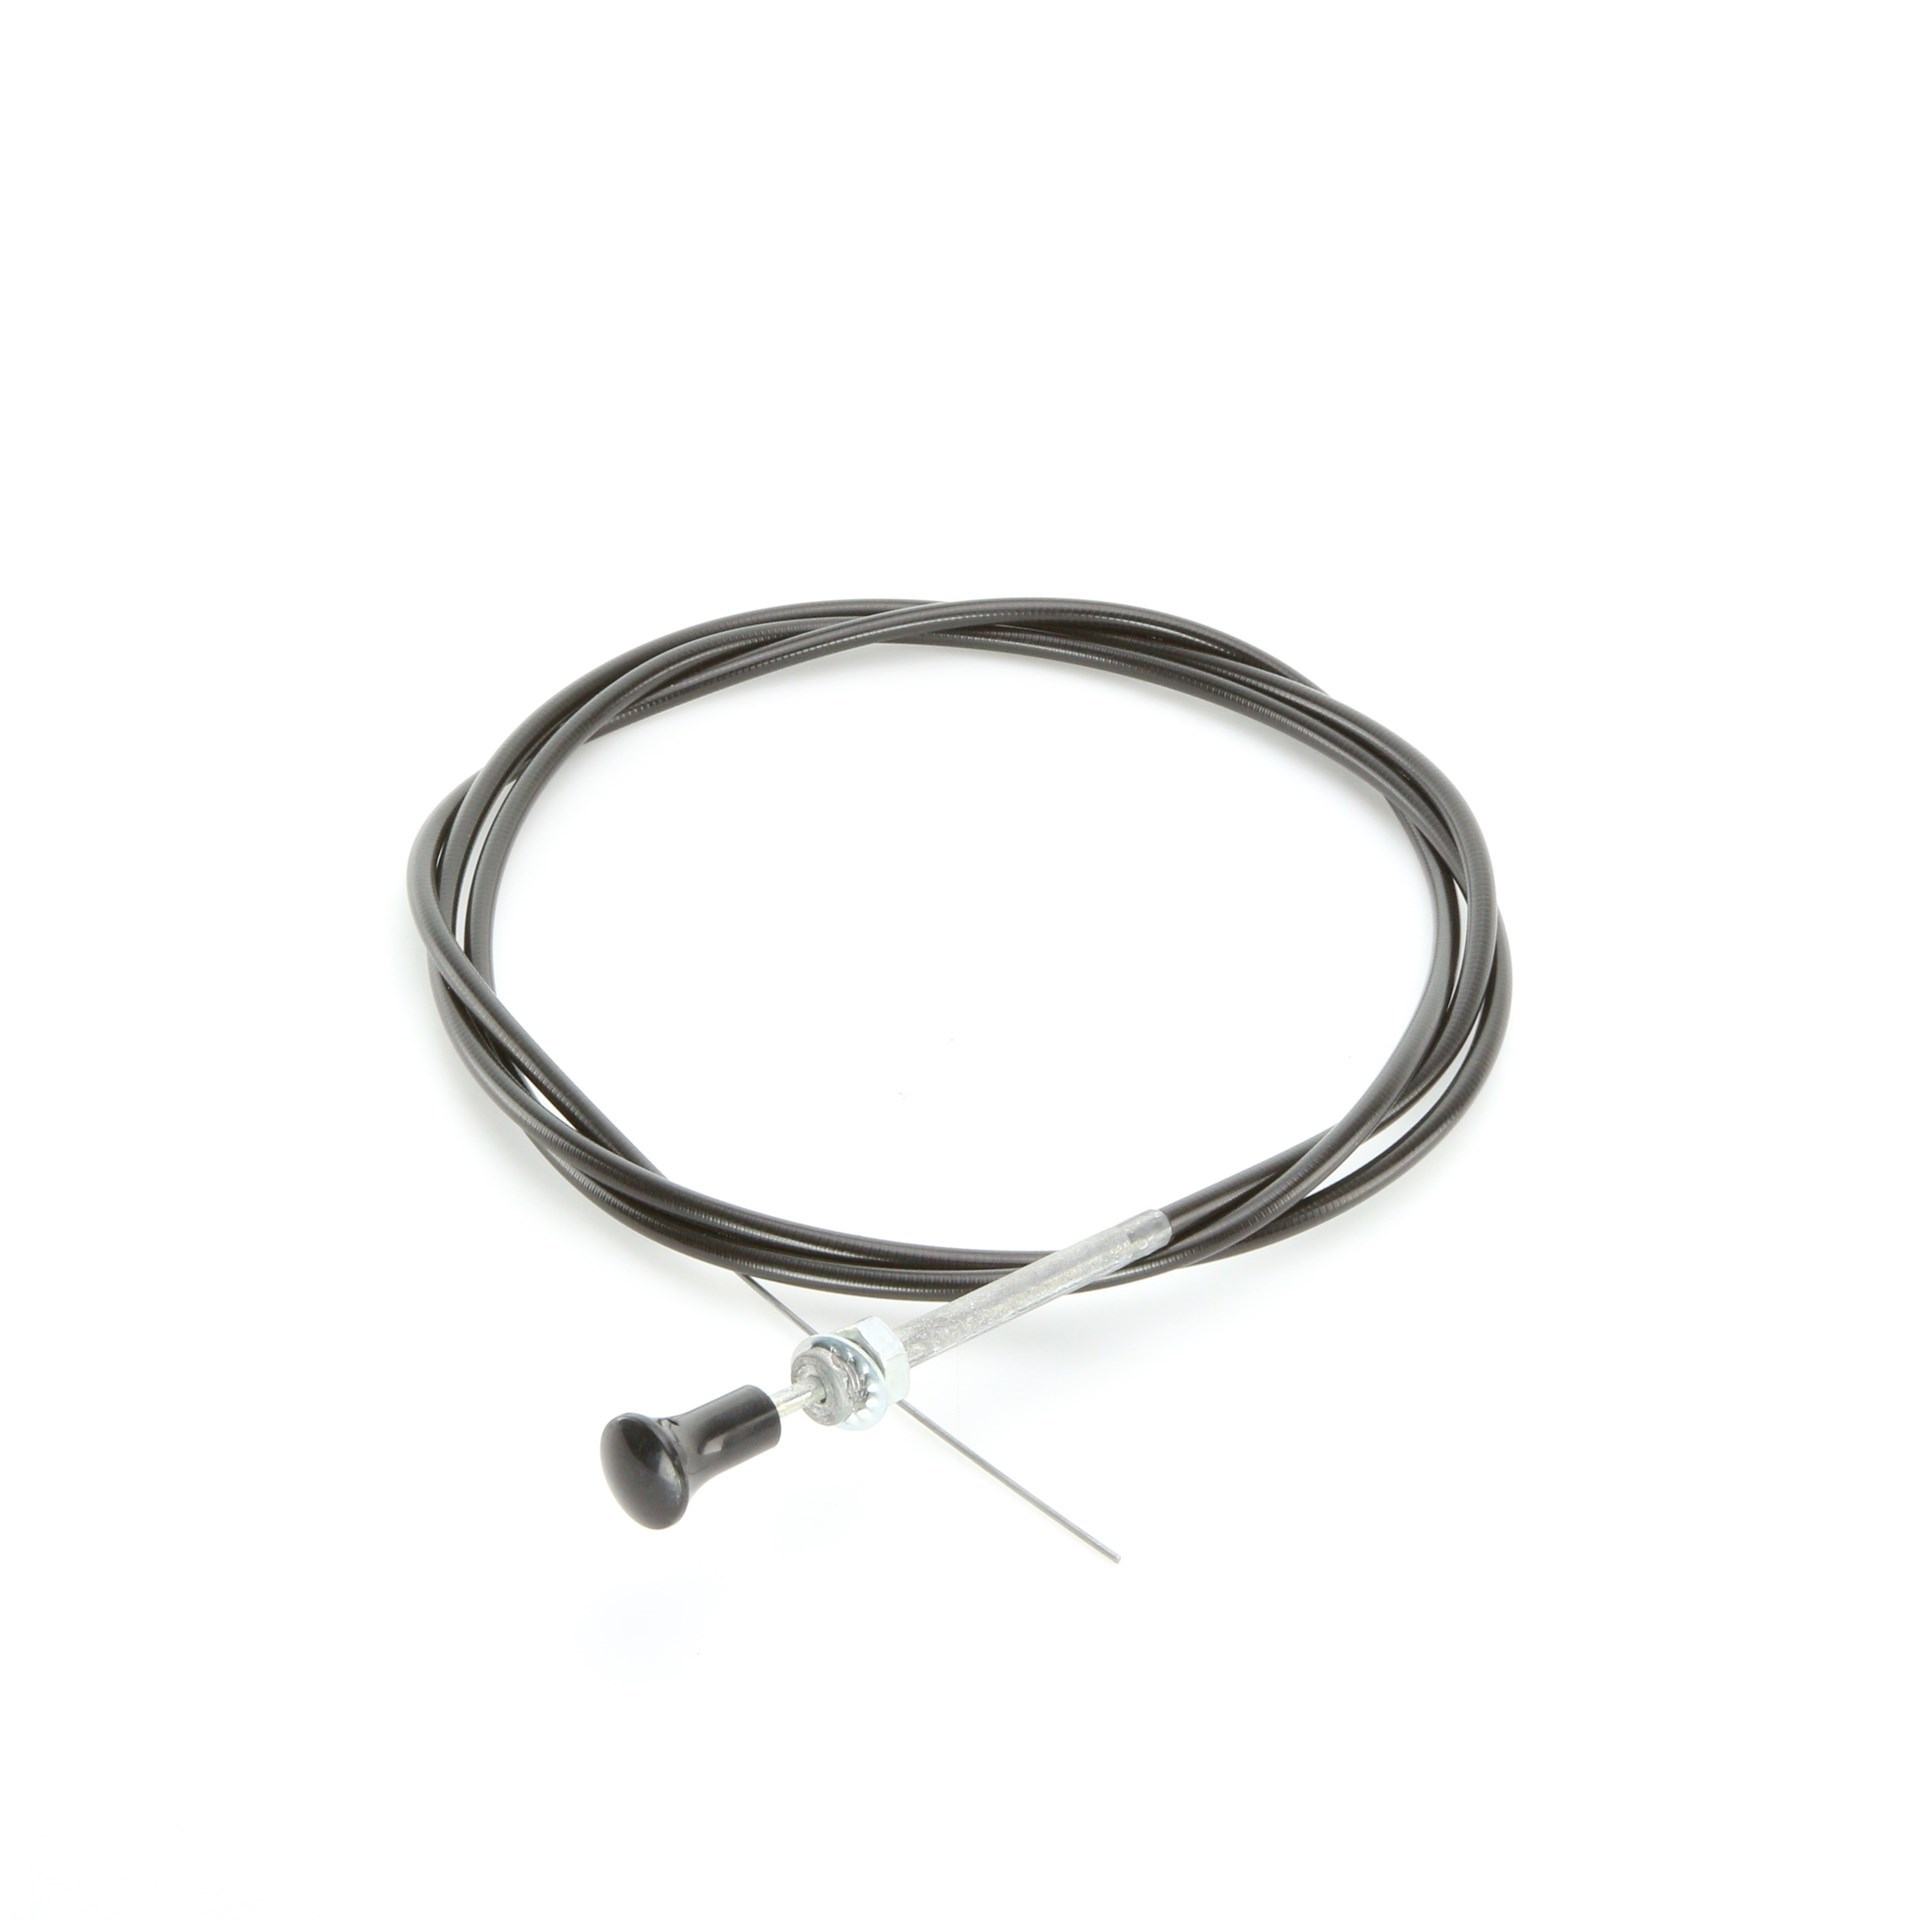 Black Push Pull Cable 6ft Long